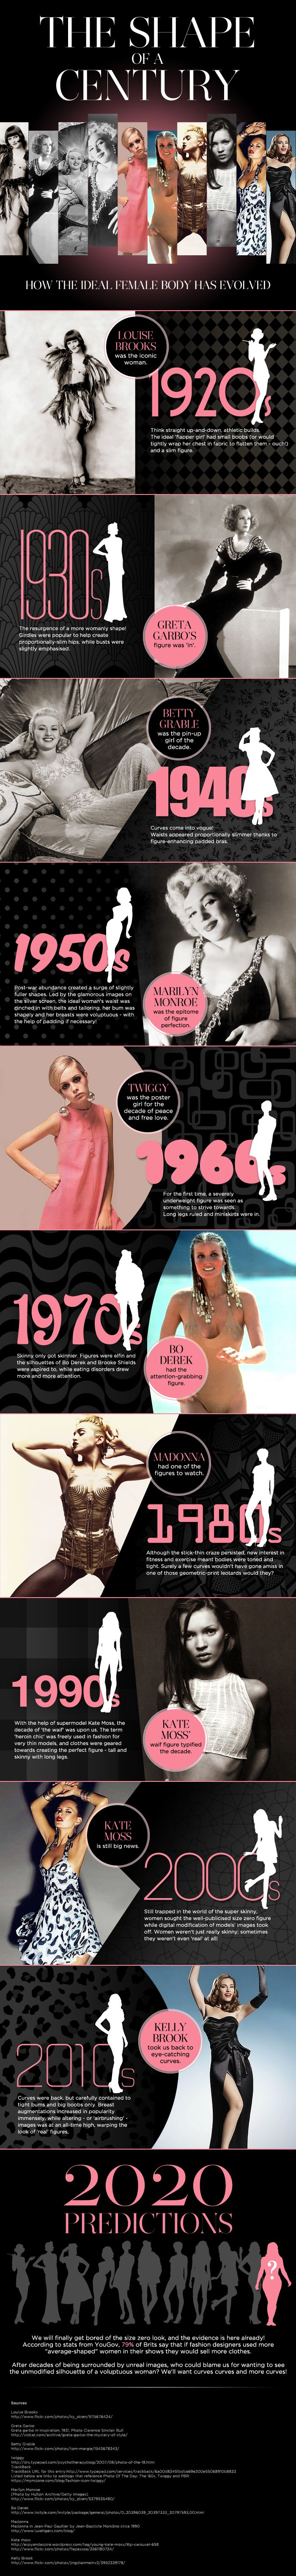 """How Have Women's Bodies Evolved? - The online fashion retailer, Marisota, created this infographic that takes a look at the evolution of culture's definition of the """"perfect"""" women. The infographic timeline provides examples of the ideal female body shape from 1920′s all the way to their predictions for 2020."""